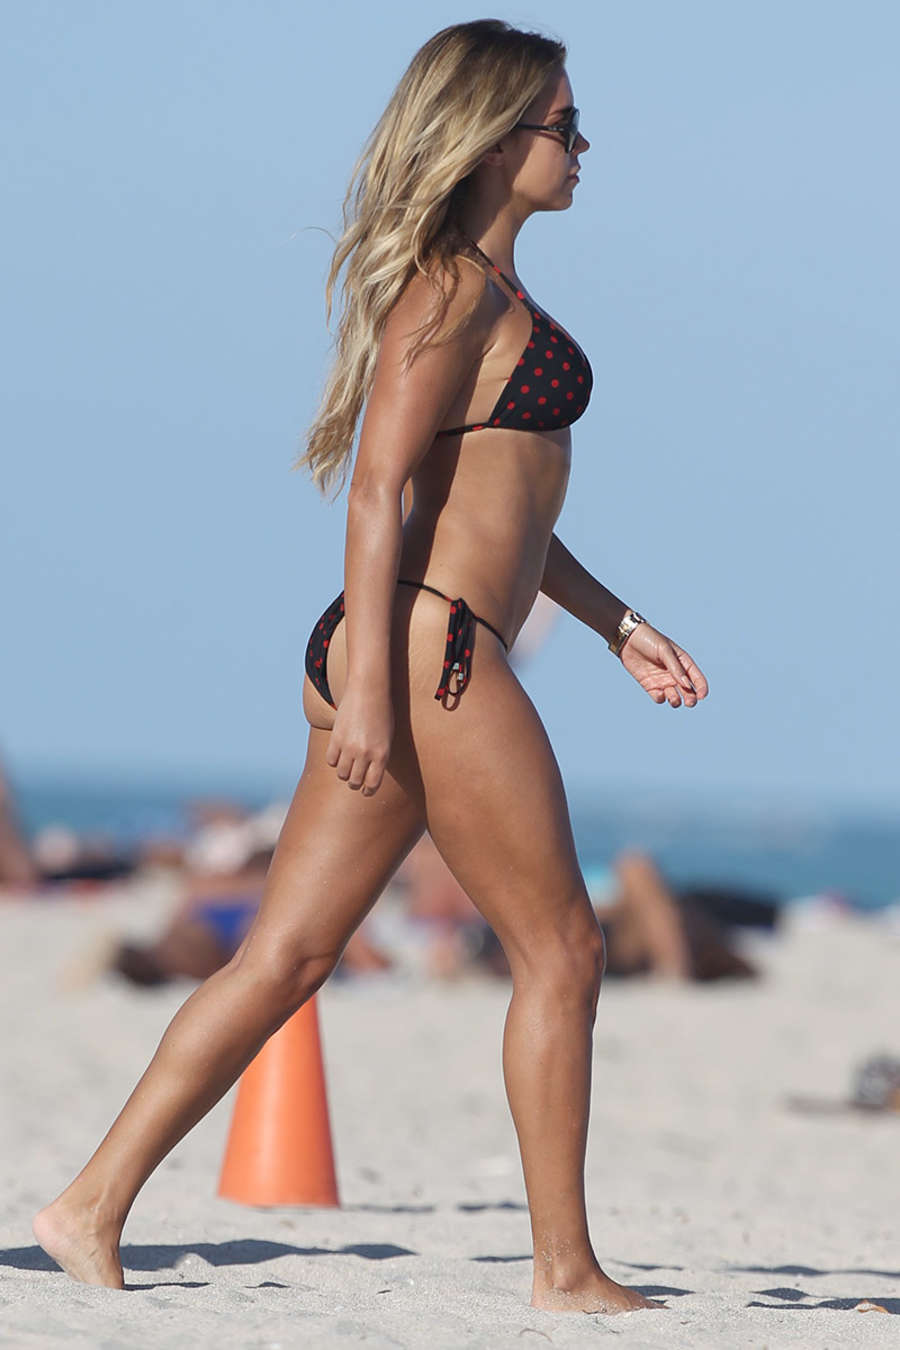 Sylvie Meis in Black Bikini on the beach in Miami Pic 26 of 35